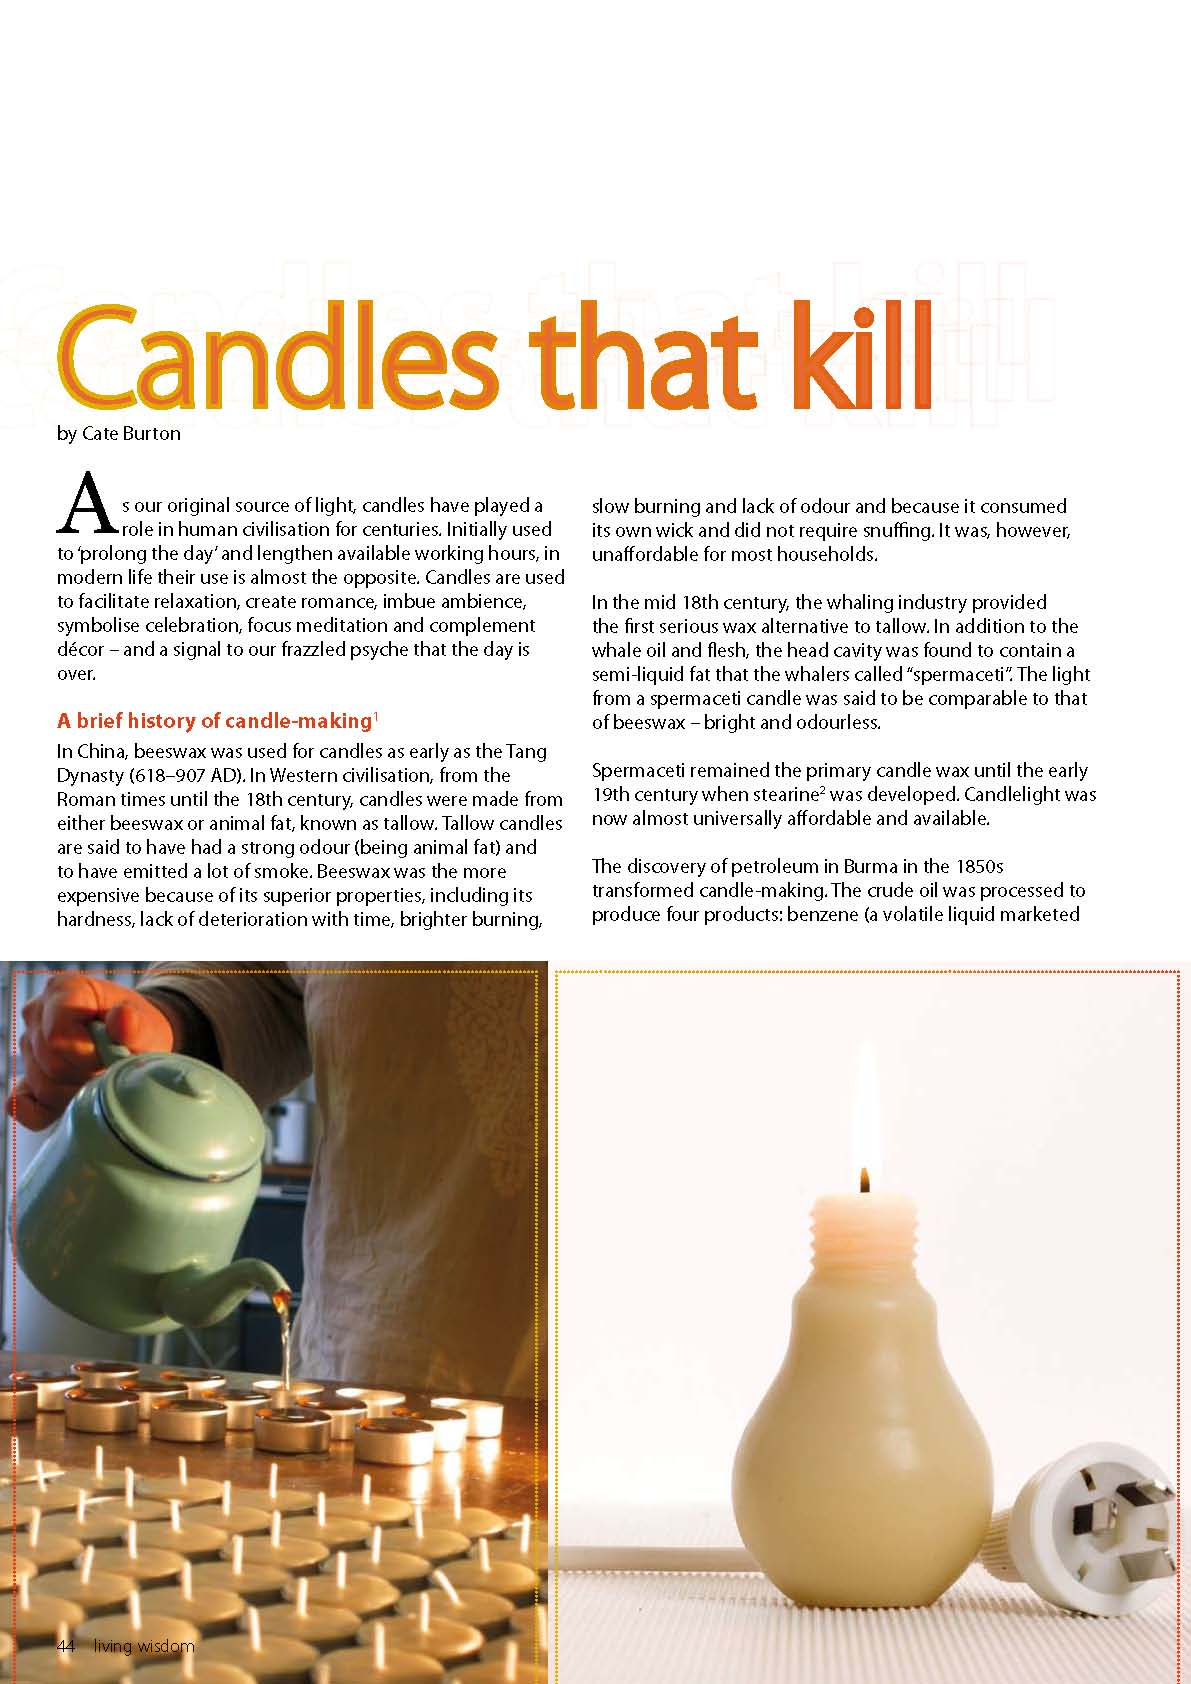 Living Wisdom article - Candles that Kill